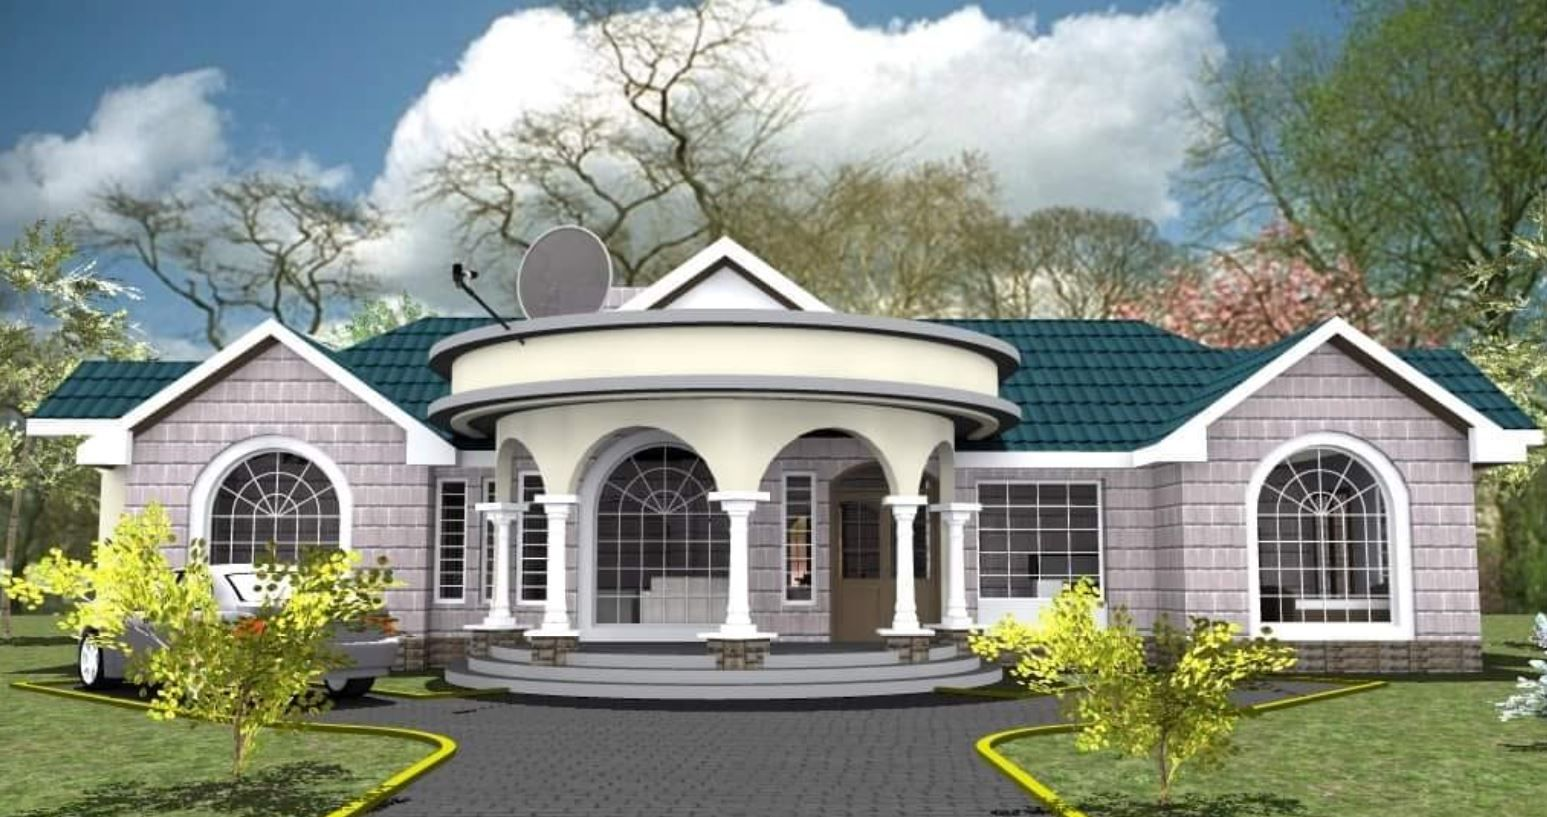 Where To Buy And Sell Modern House Designs In Kenya House Designs In Kenya House Design Pictures Craftsman Style House Plans